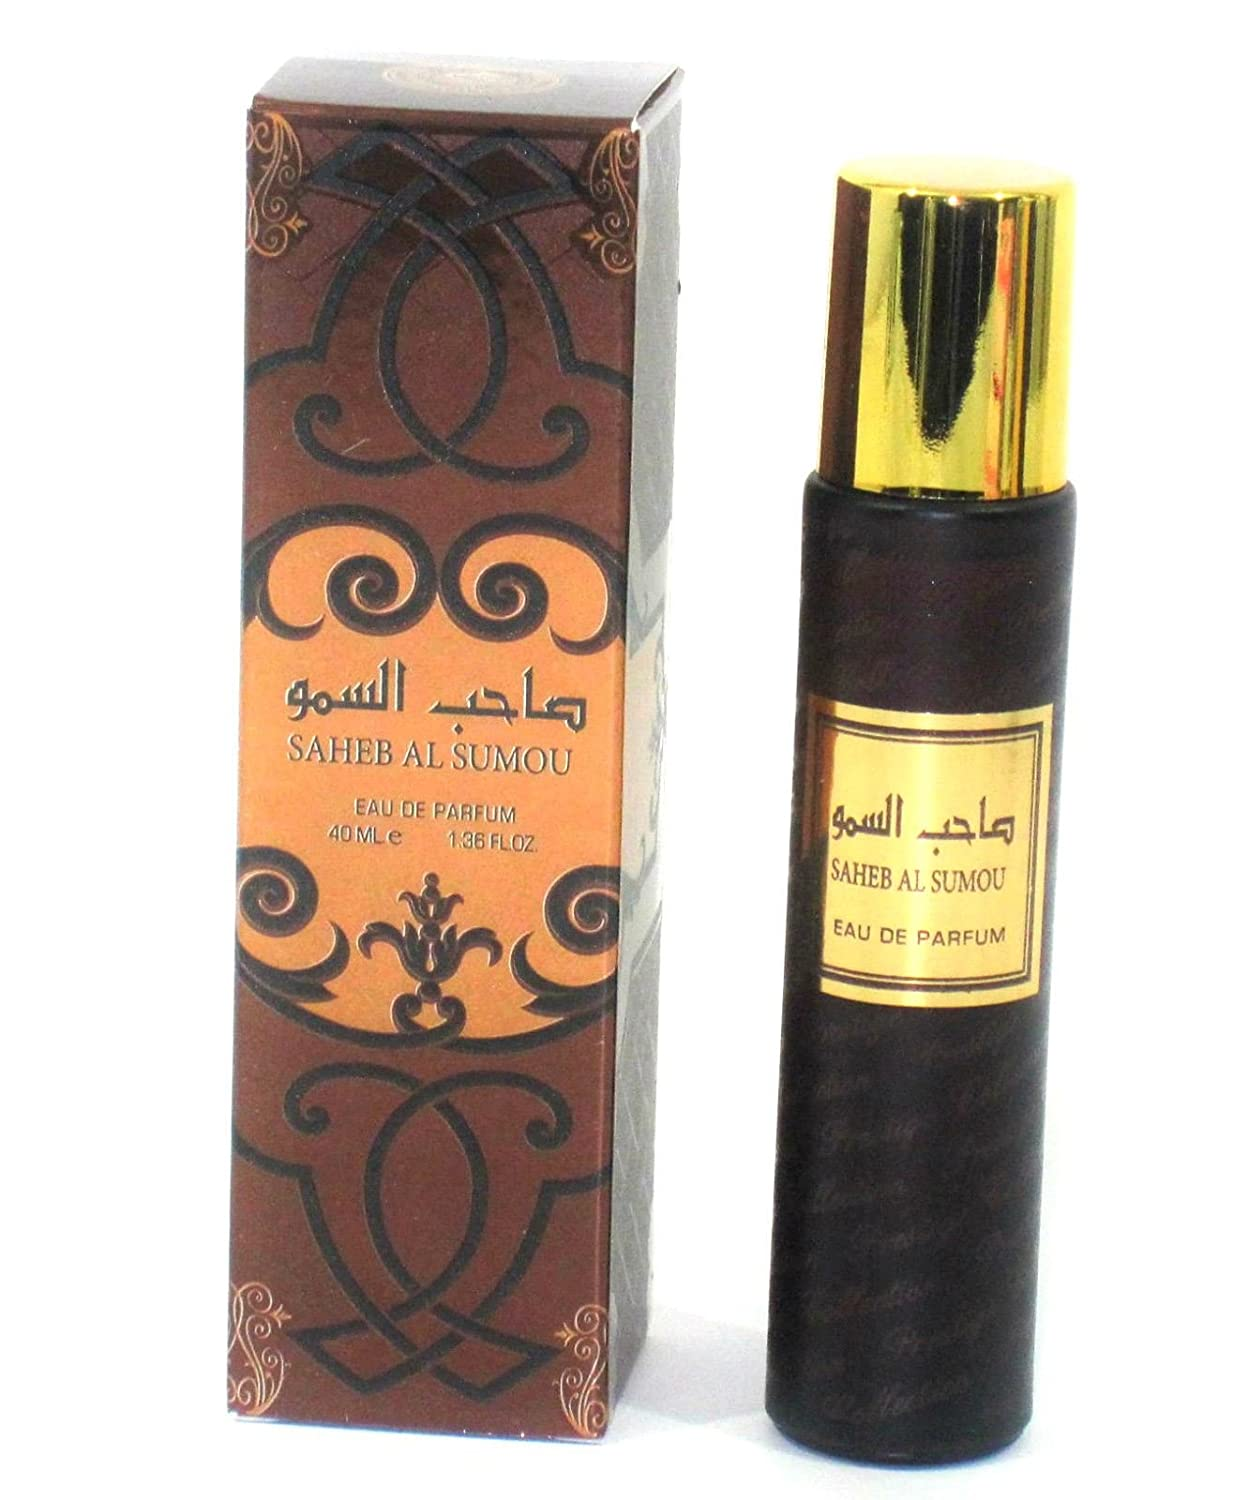 Saheb Al Sumou Prestige Collection Perfume Spray Arabian Fragrance Or You Go For Instance To The Electronic Shop Downstairs At Tukcom 40ml Edp Beauty